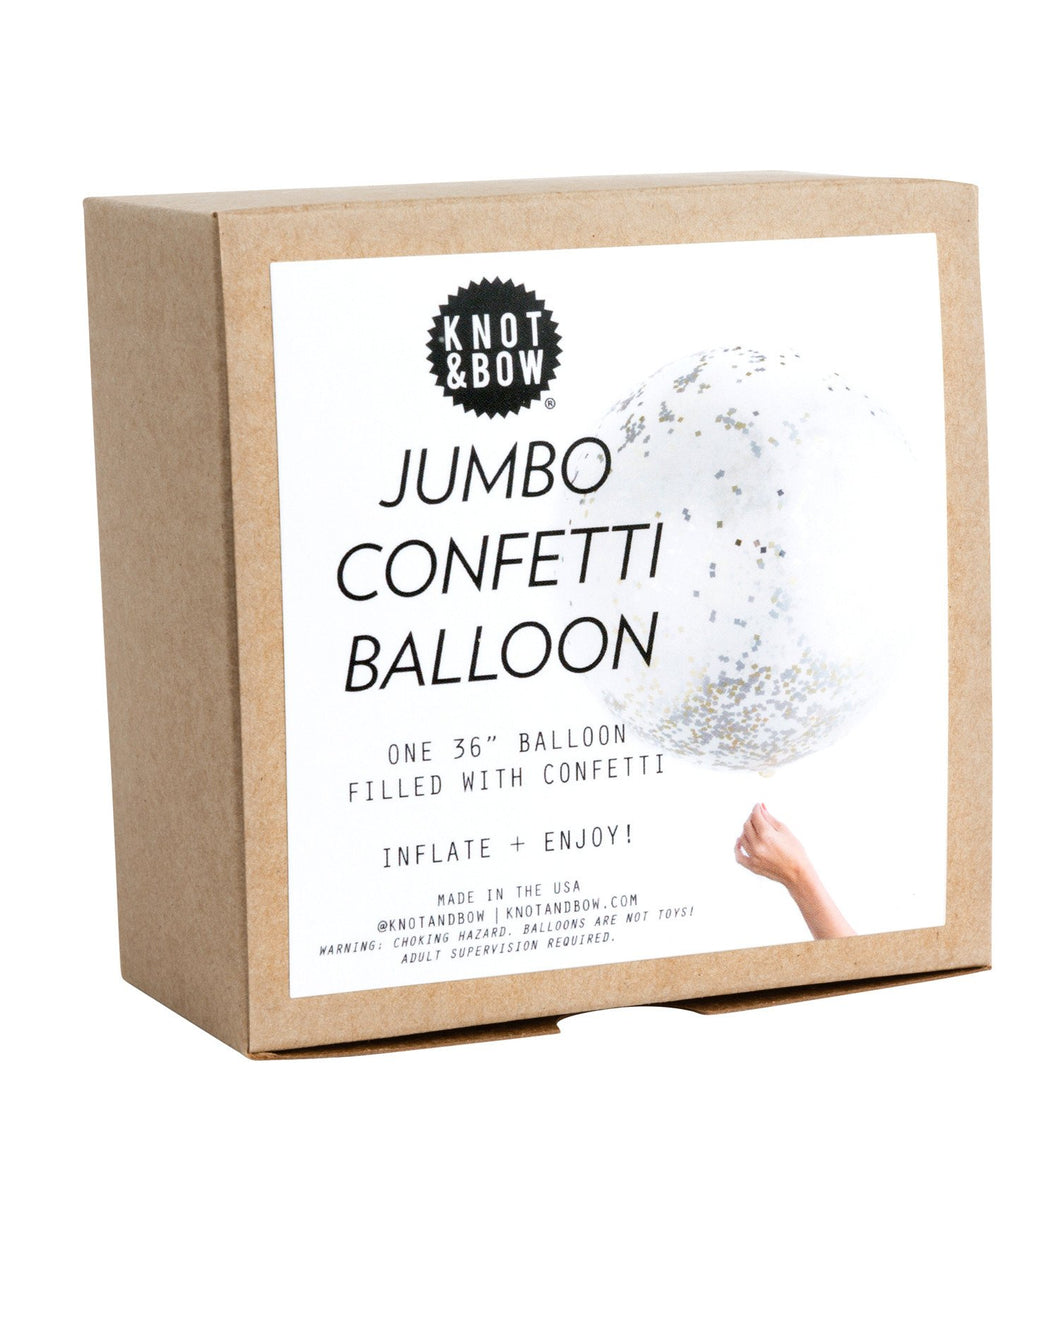 Jumbo Confetti Metallic Balloon